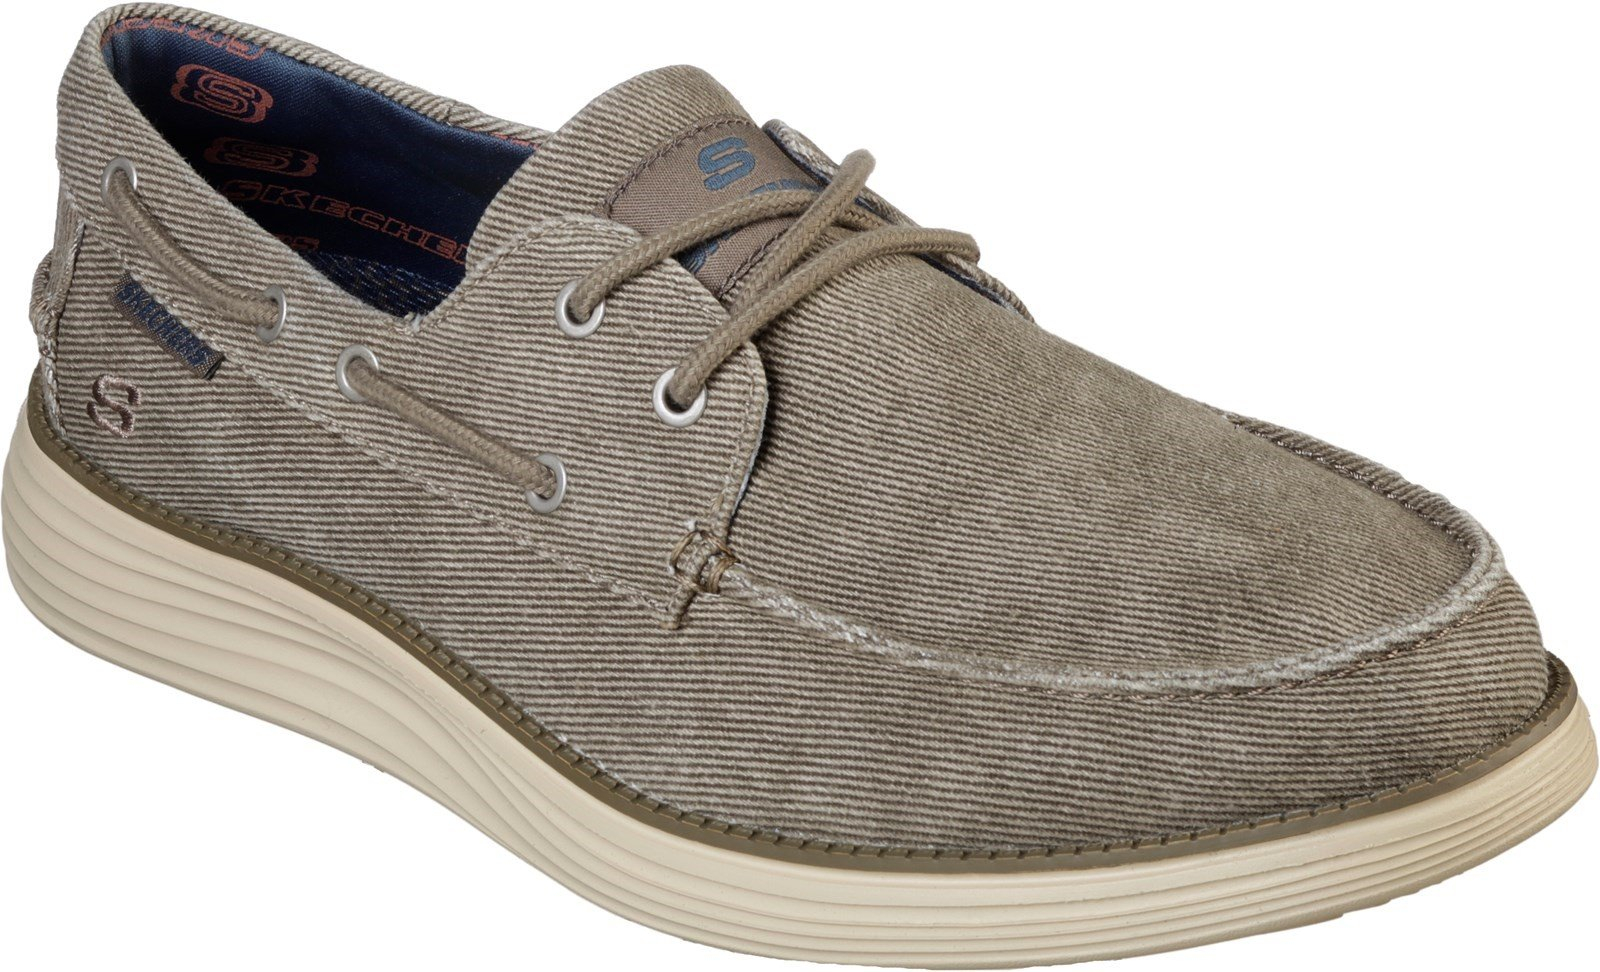 Skechers Men's Lorano Moc Toe Canvas Lace Up Trainer Various Colours 28491 - Taupe 6